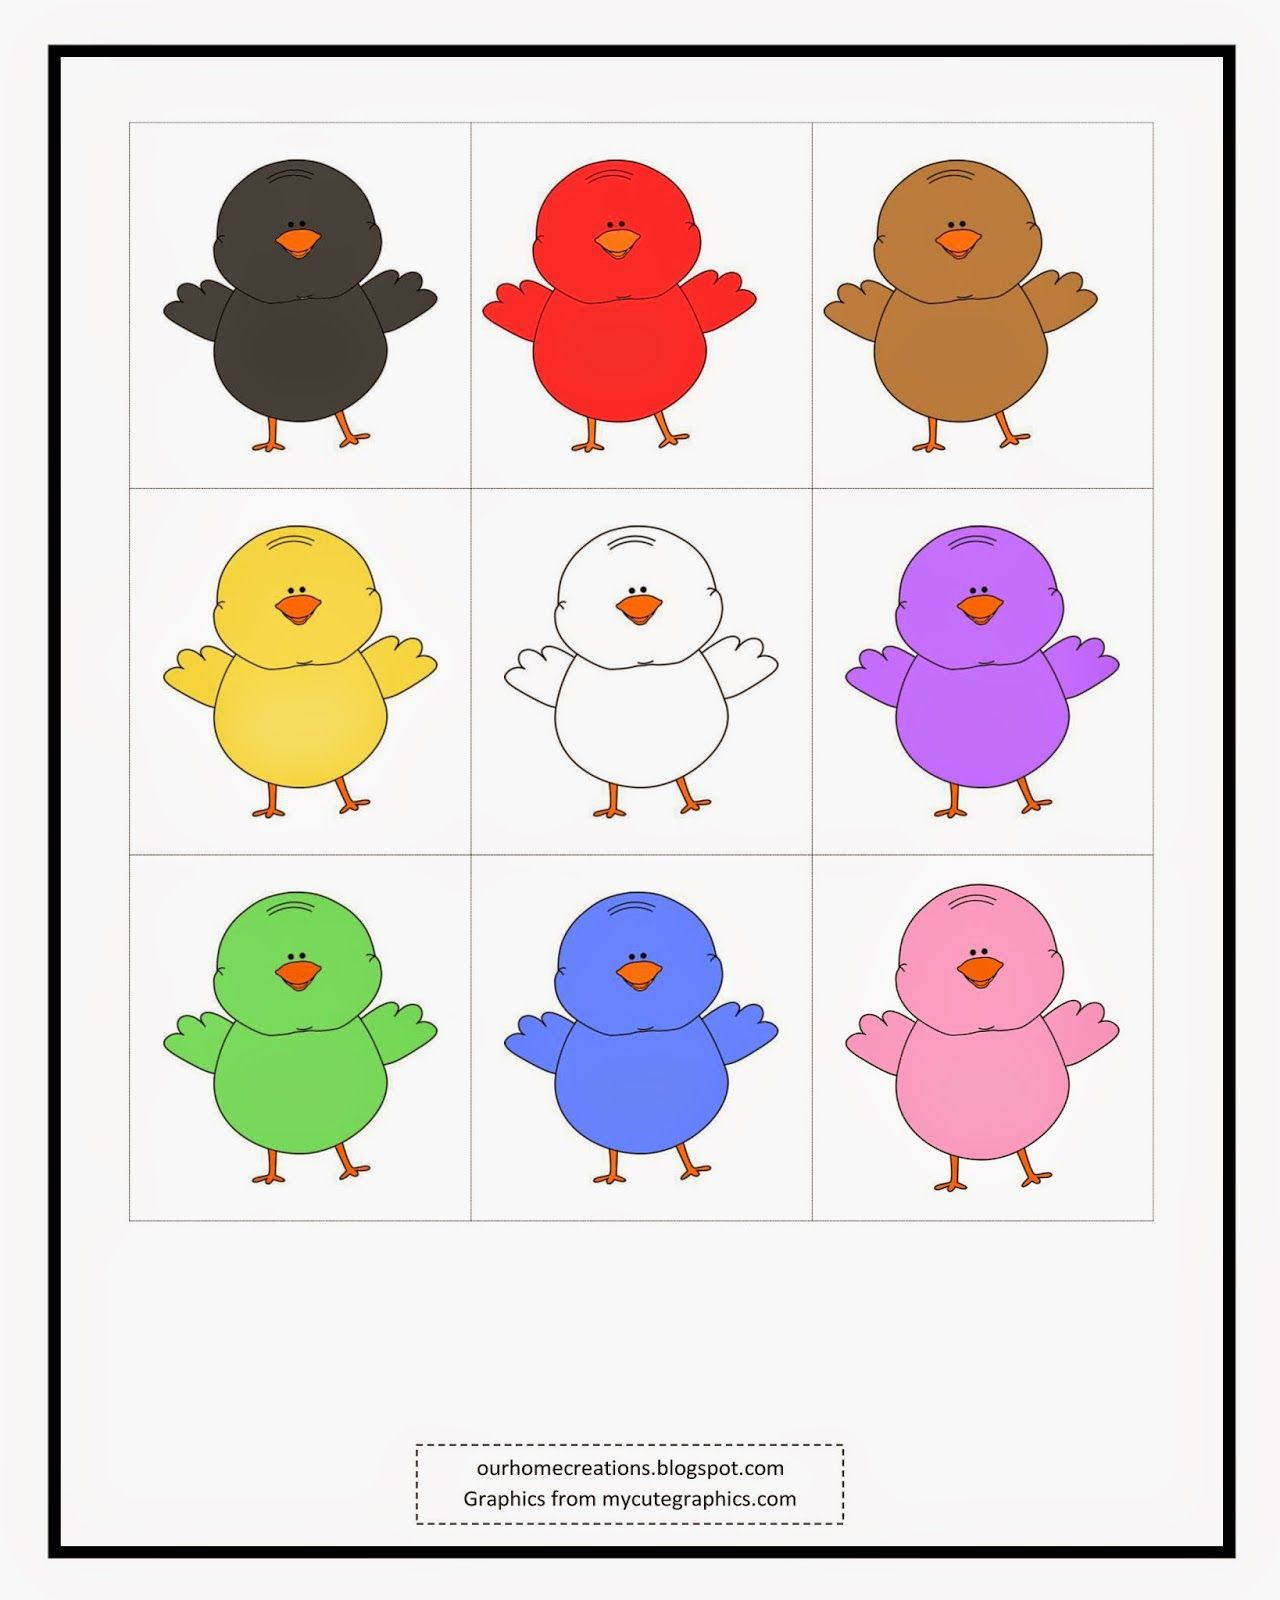 ourhomecreations hens of different colors poem and clip art preschool learning colors. Black Bedroom Furniture Sets. Home Design Ideas